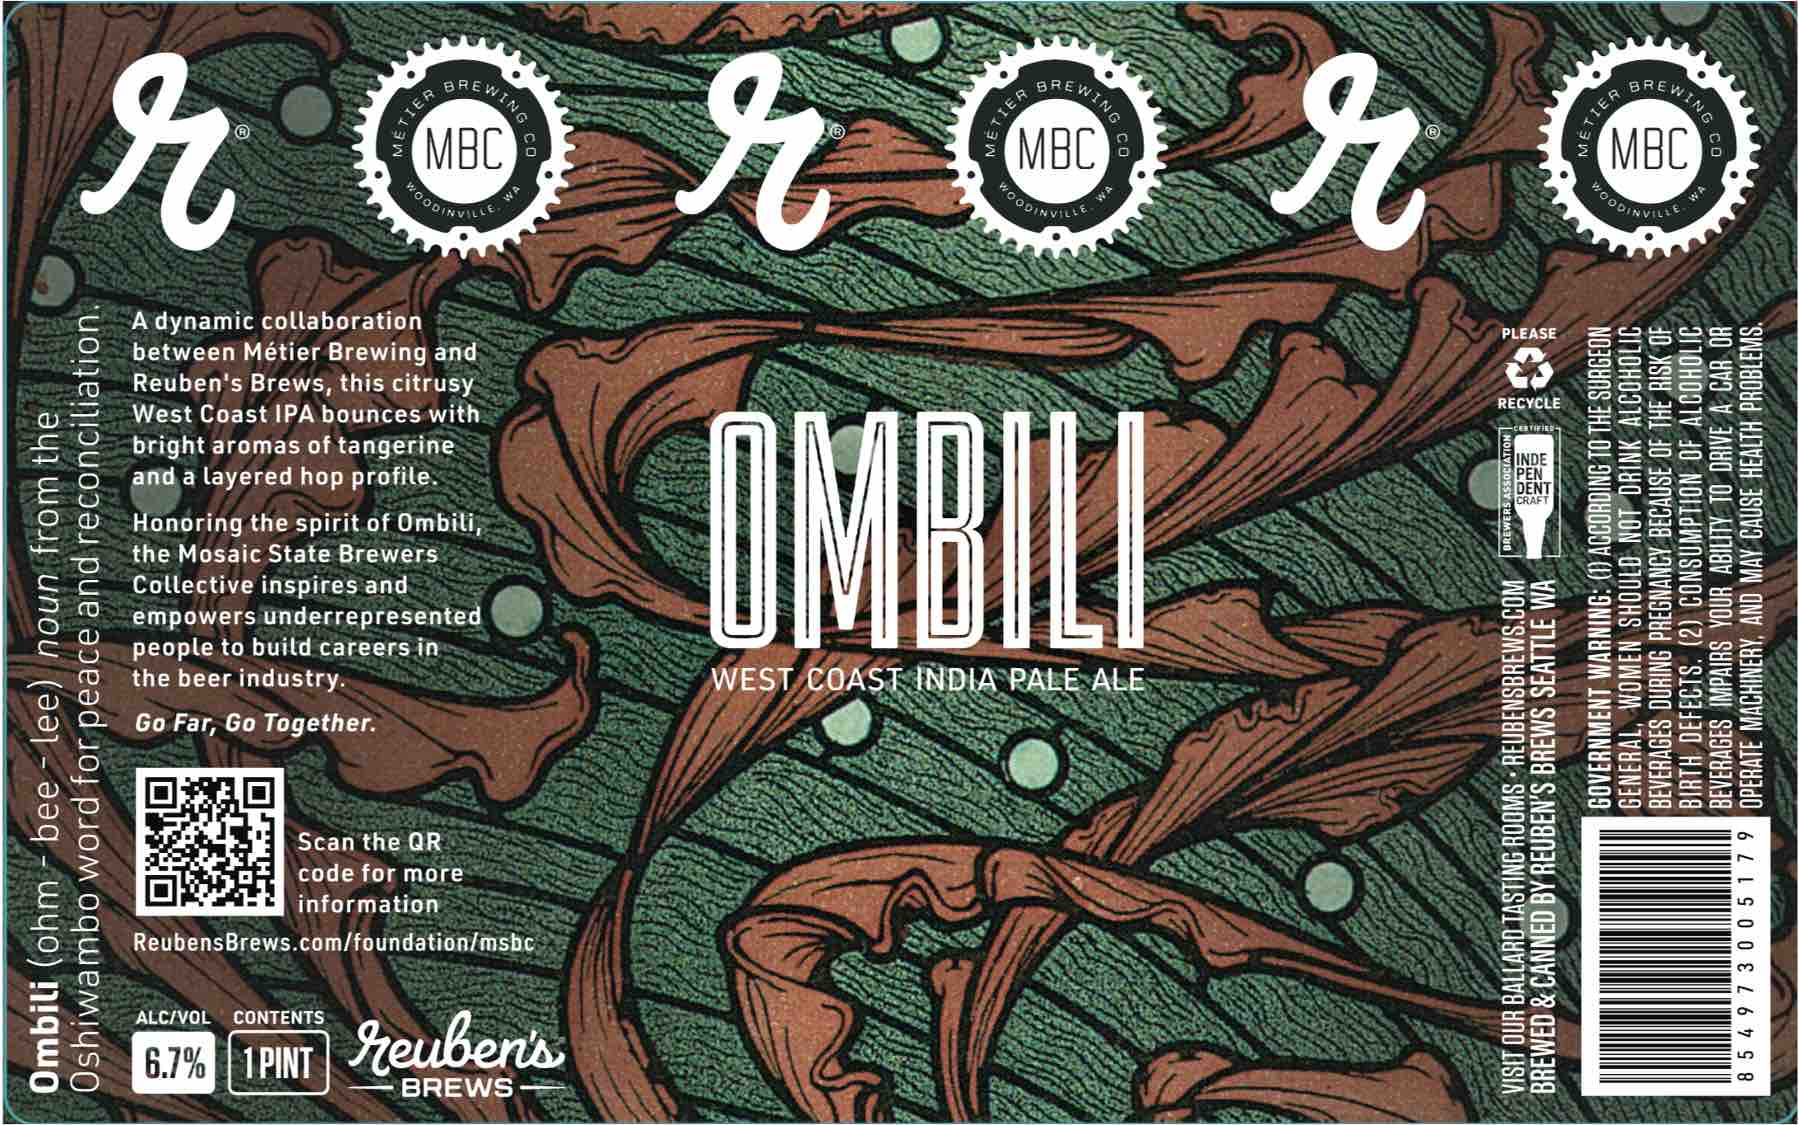 Reuben's Brews Ombili West Coast IPA Label